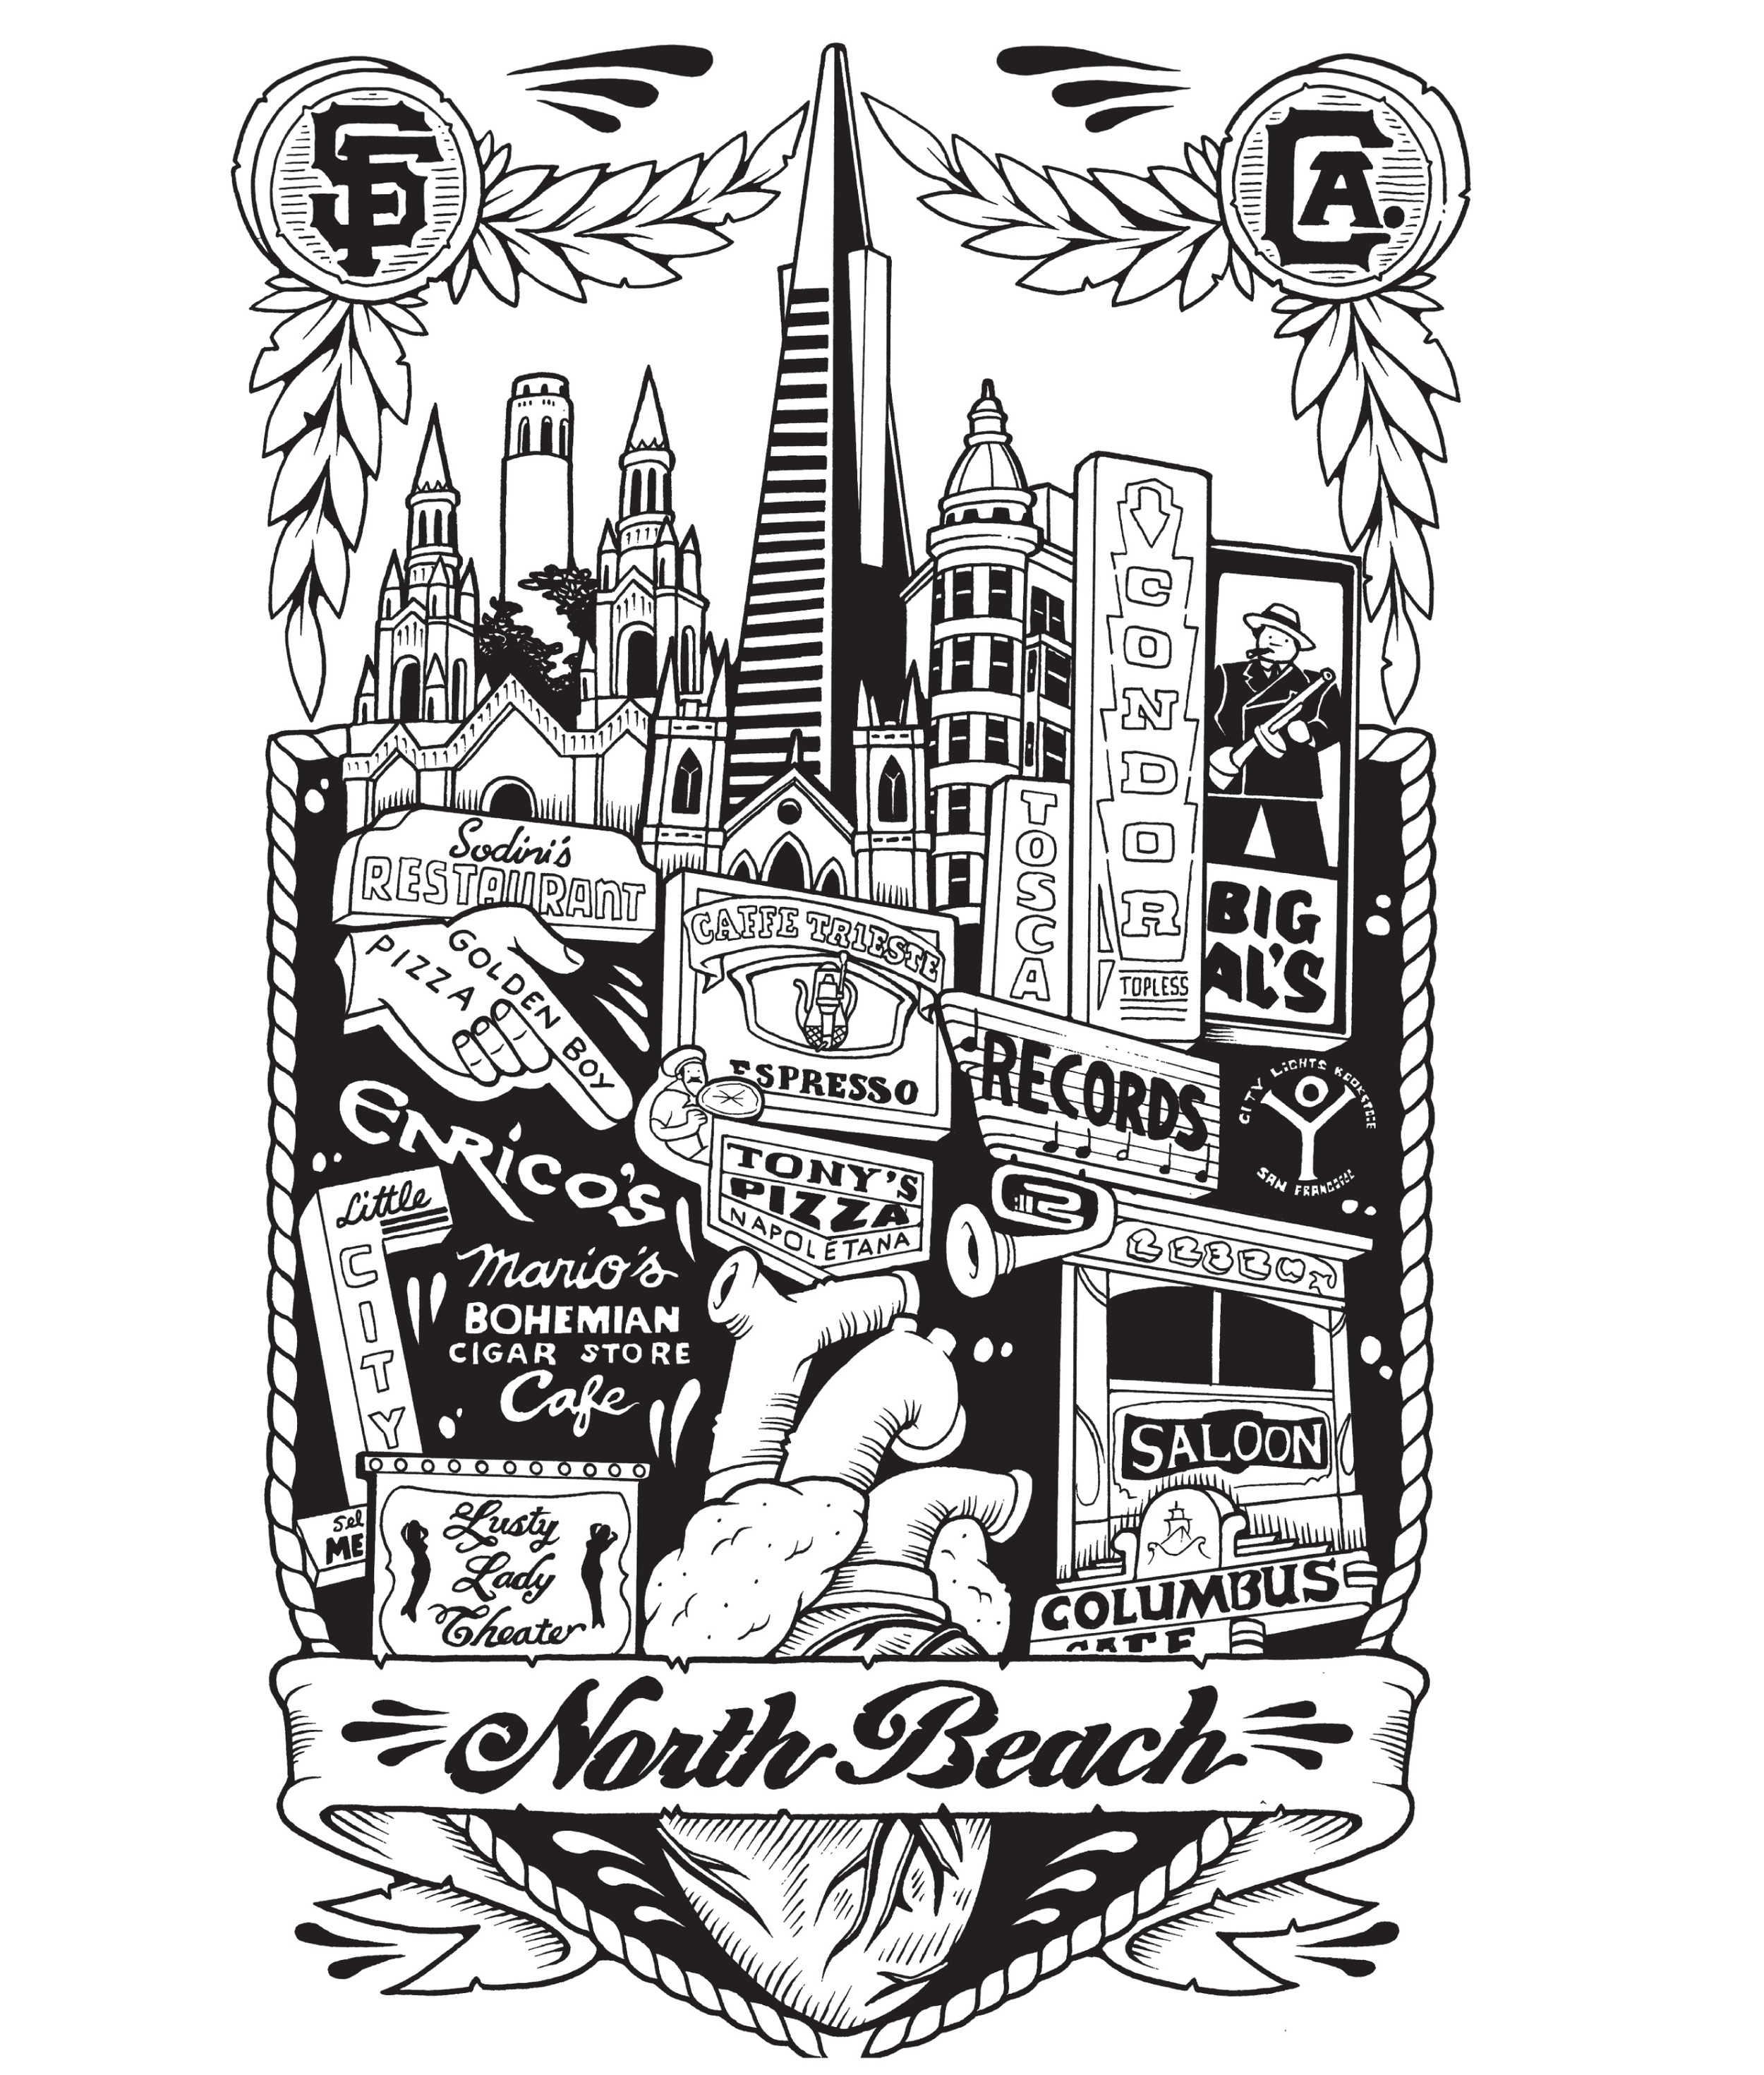 NORTH BEACH - JEREMY FISH